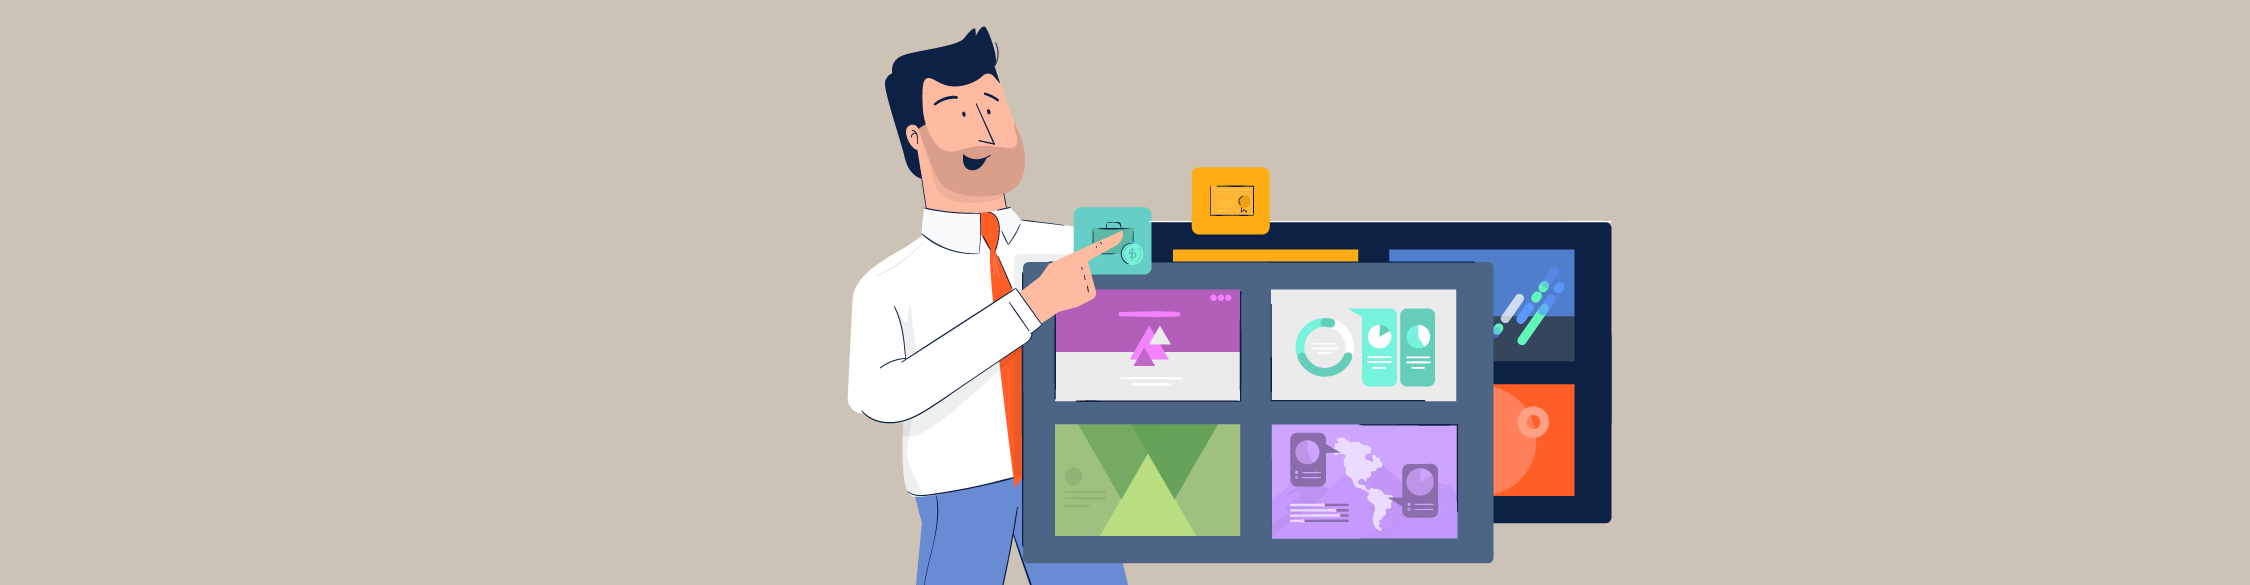 An illustration of a man showcasing different types of presentations.